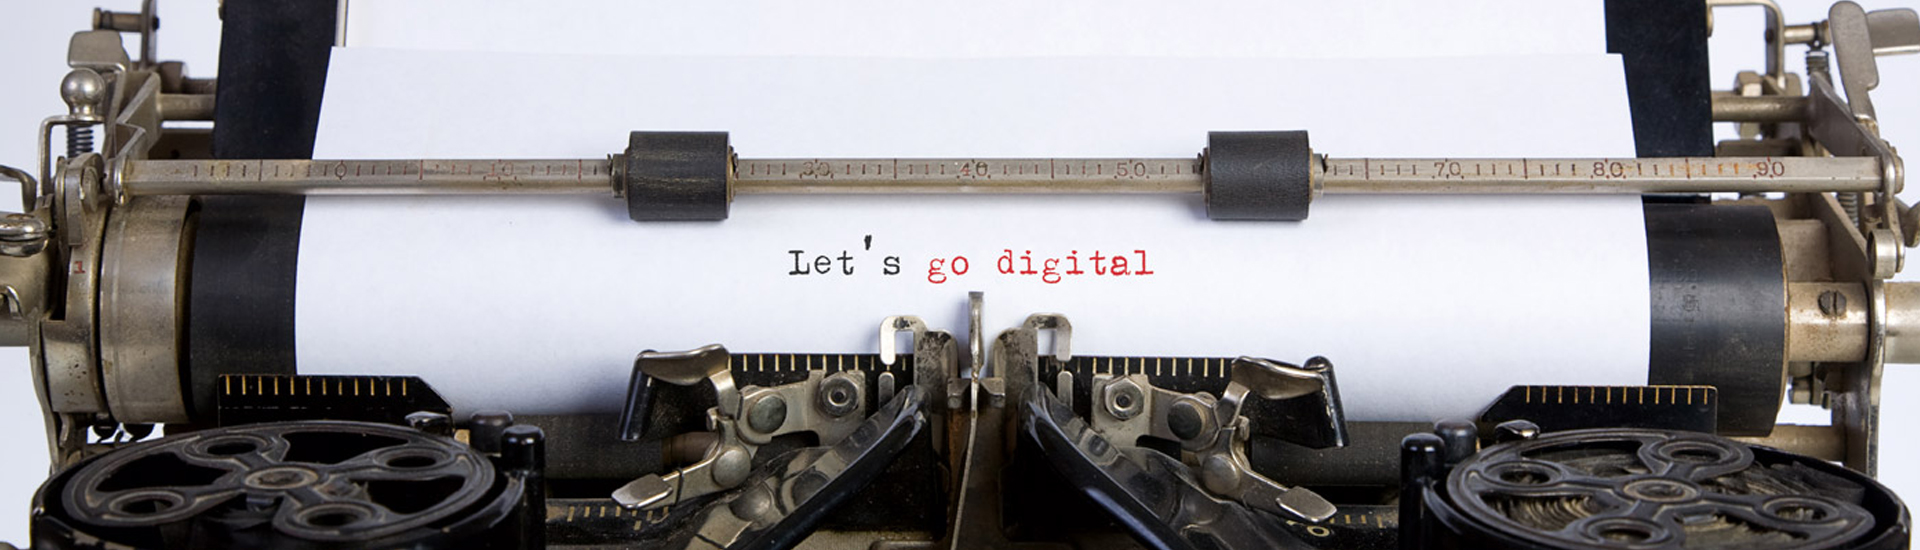 Let's go digital mit abilex